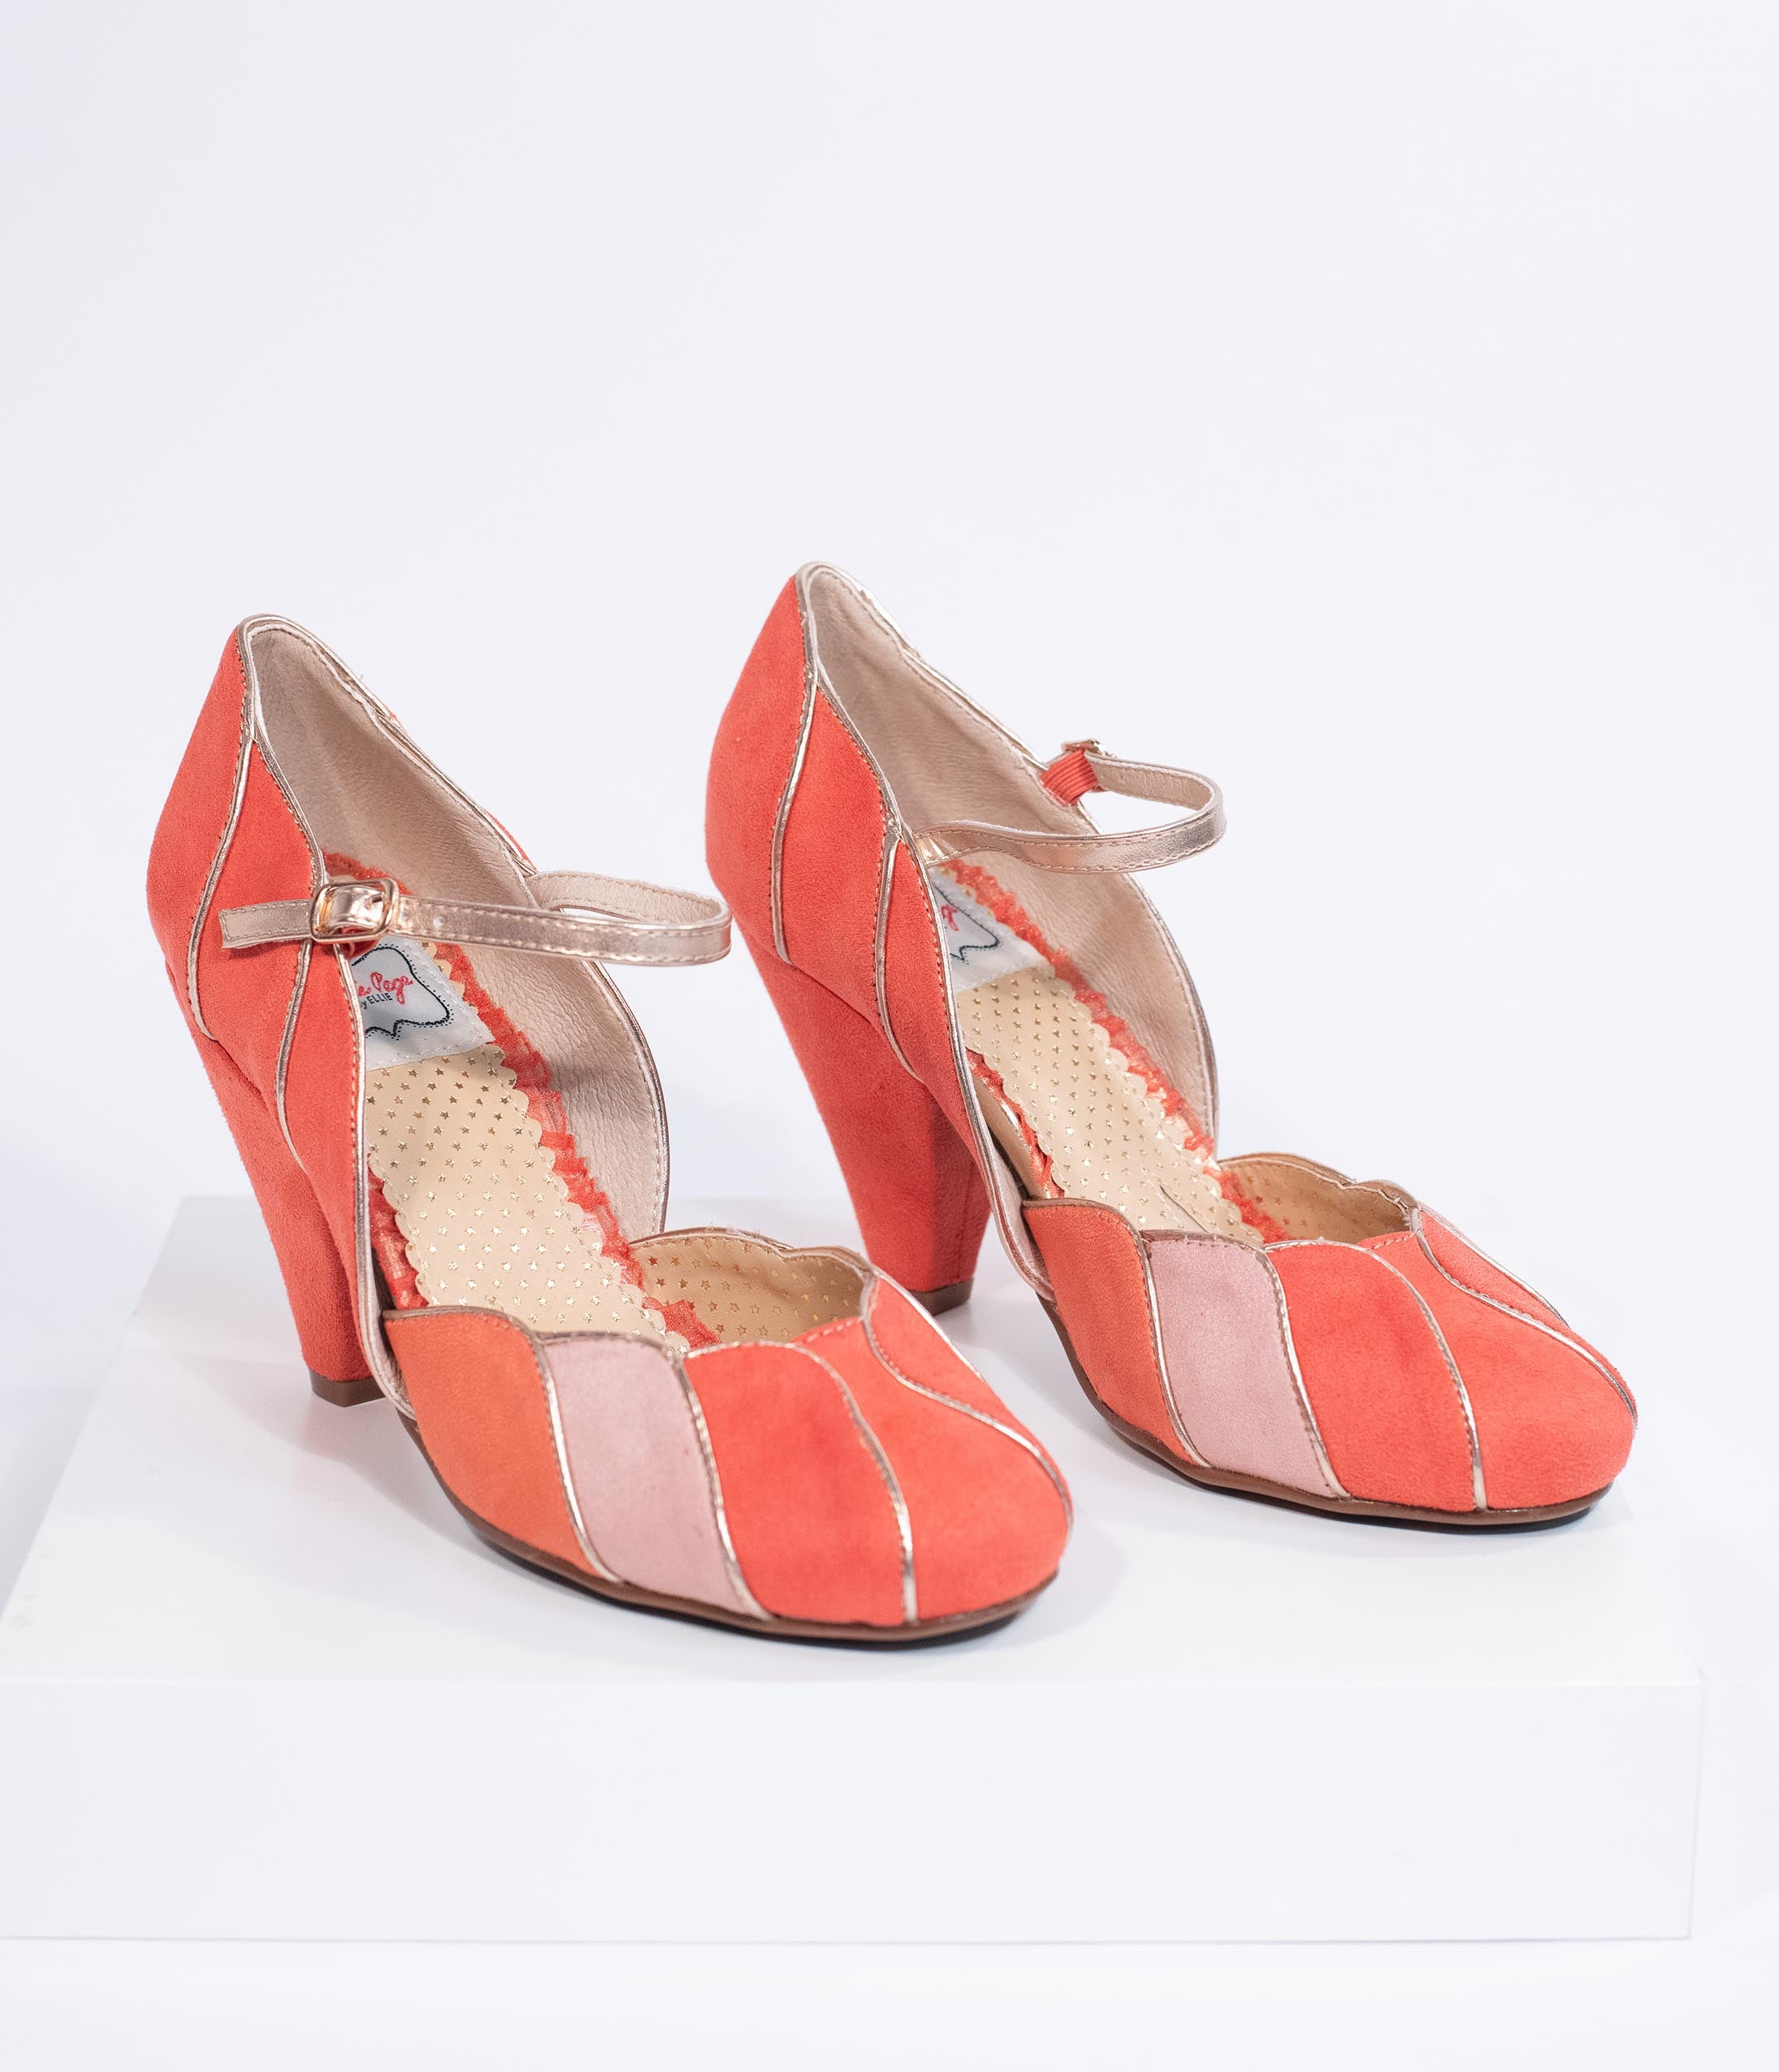 Vintage Style Shoes, Vintage Inspired Shoes Bettie Page 1950S Peach Pink Suede Kathryn Heels $78.00 AT vintagedancer.com